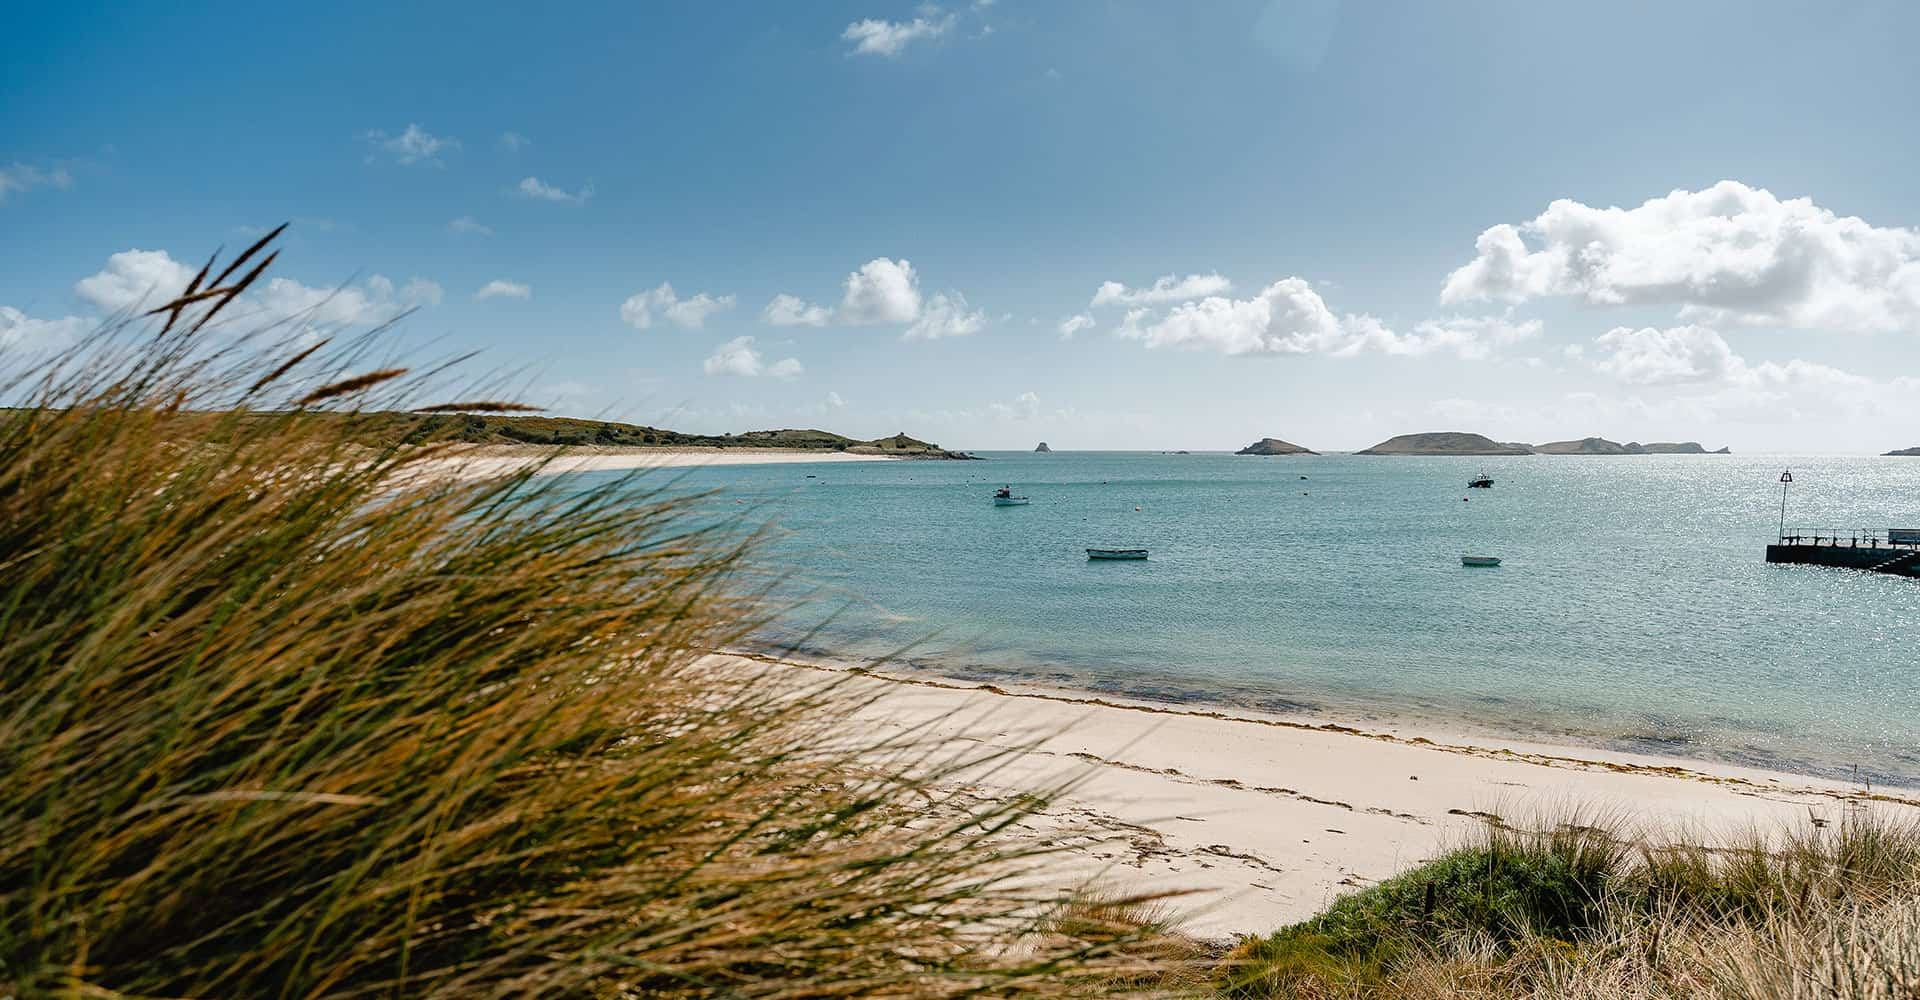 A beach on St Martins - Day Trip Ideas to the Isles of Scilly